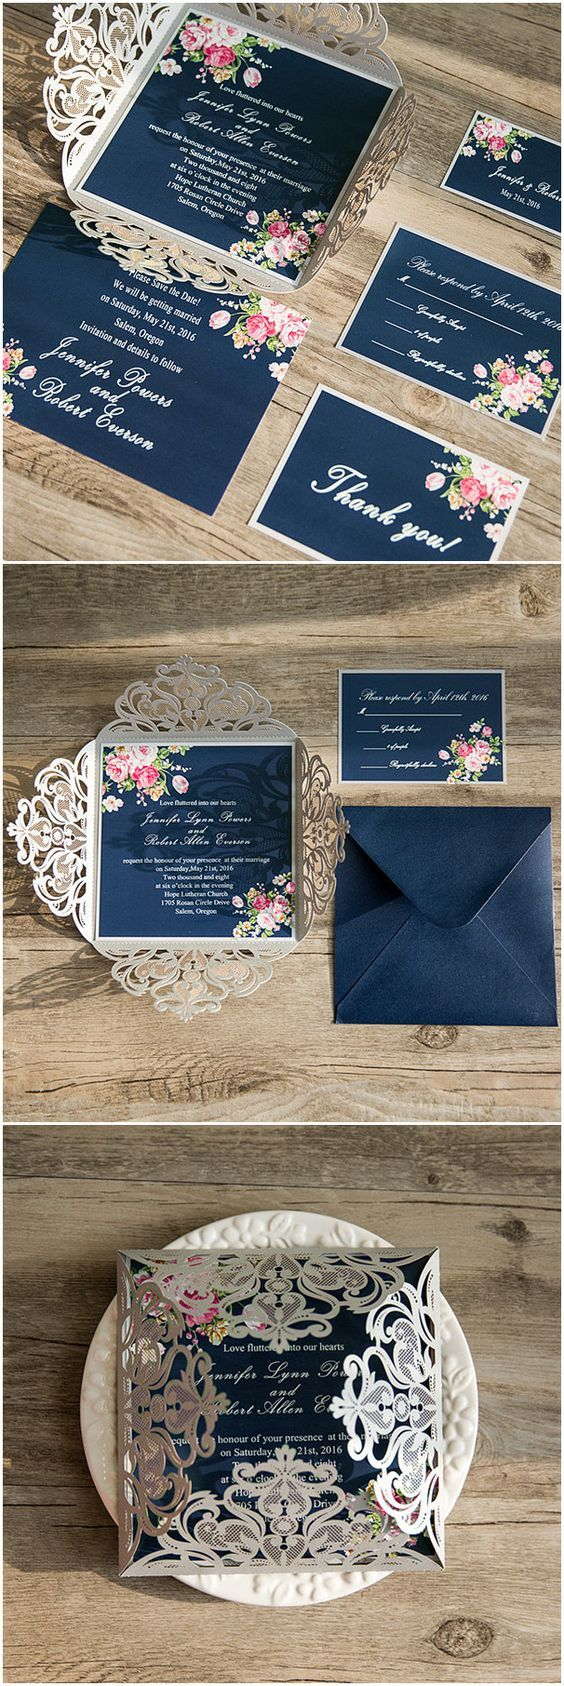 shabby chic navy blue and pink laser cut floral wedding invitations @elegantwinvites